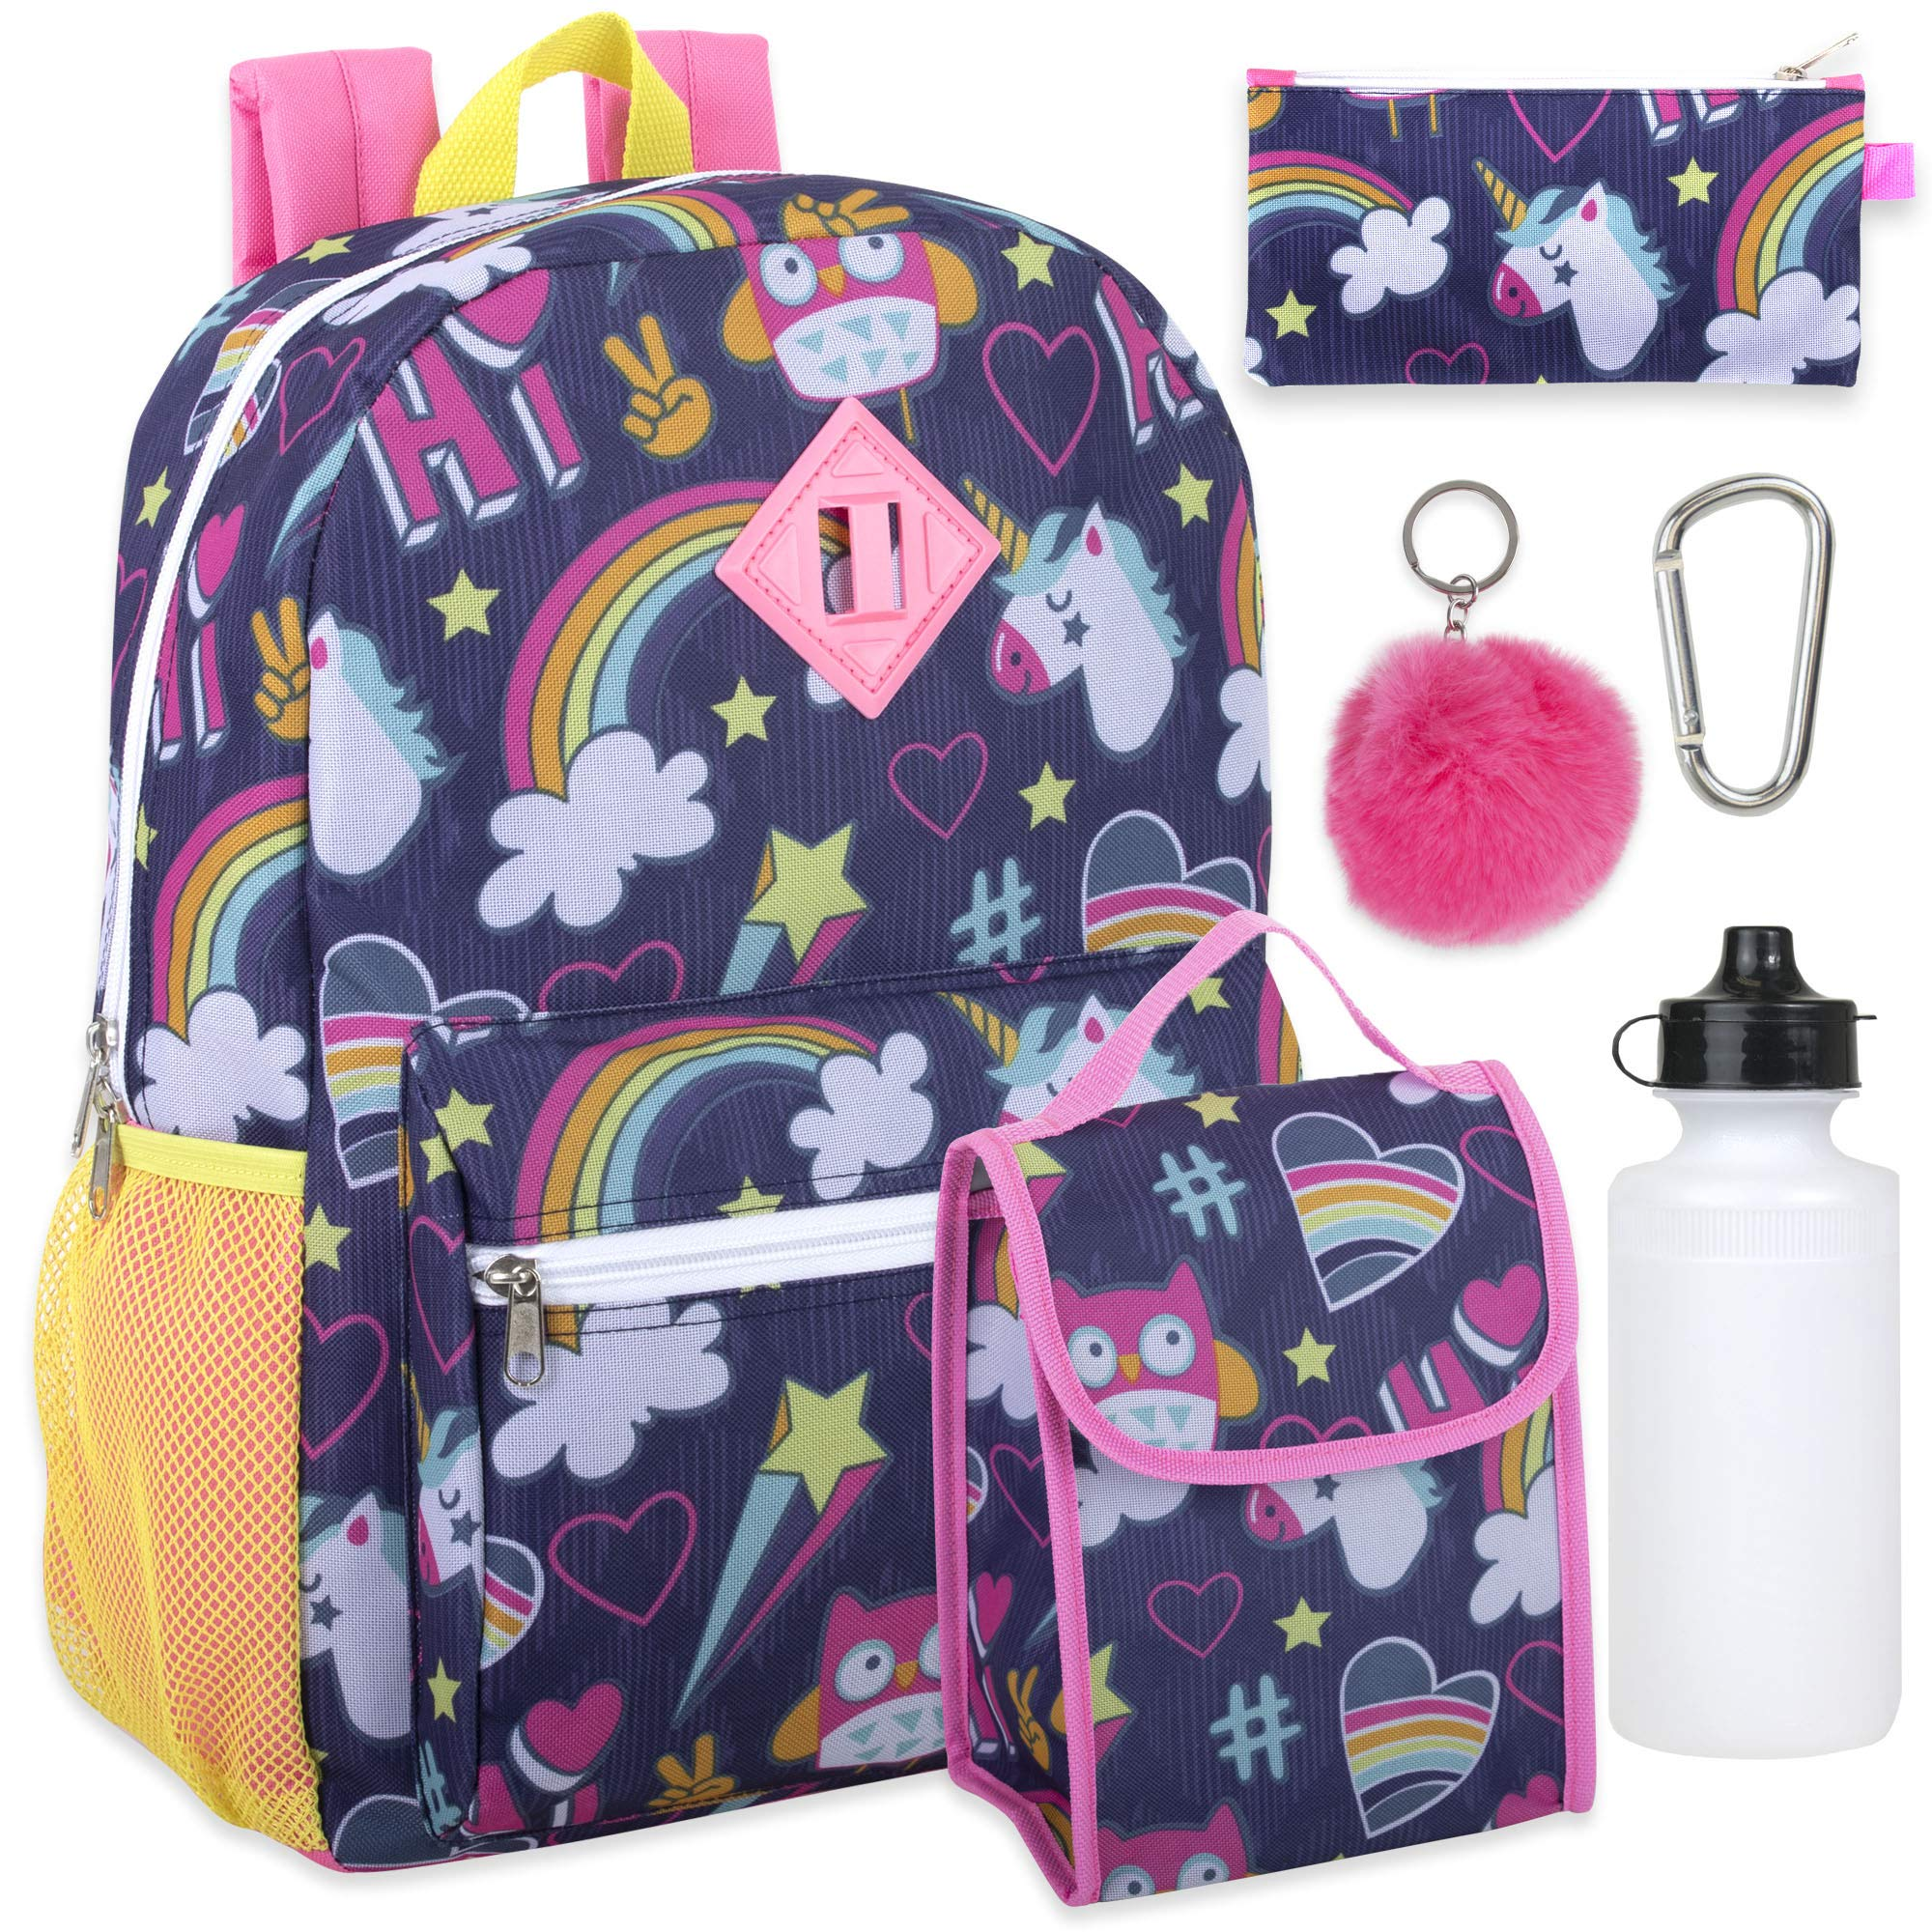 Girl's 6 in 1 Backpack Set With Lunch Bag, Pencil Case, Bottle, Keychain, Clip (Unicorn clouds) by Trail maker